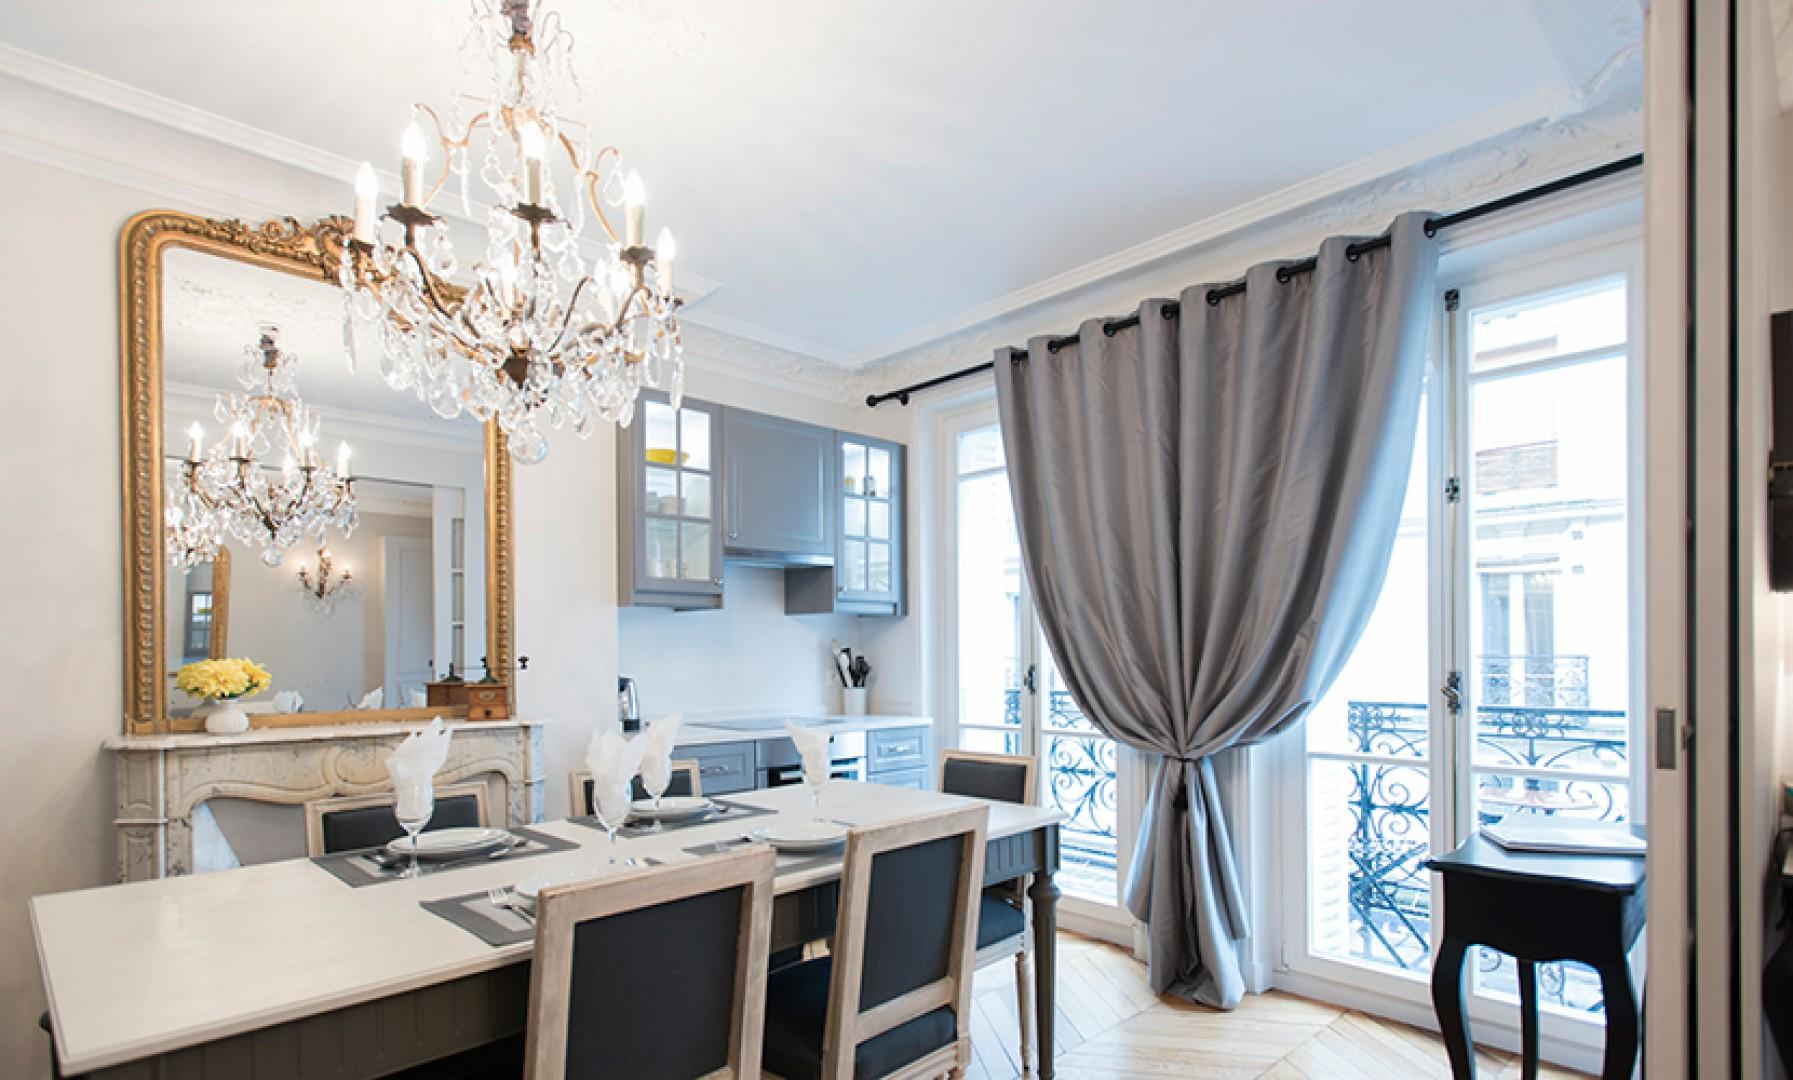 Large French doors fill the kitchen and dining area with light.